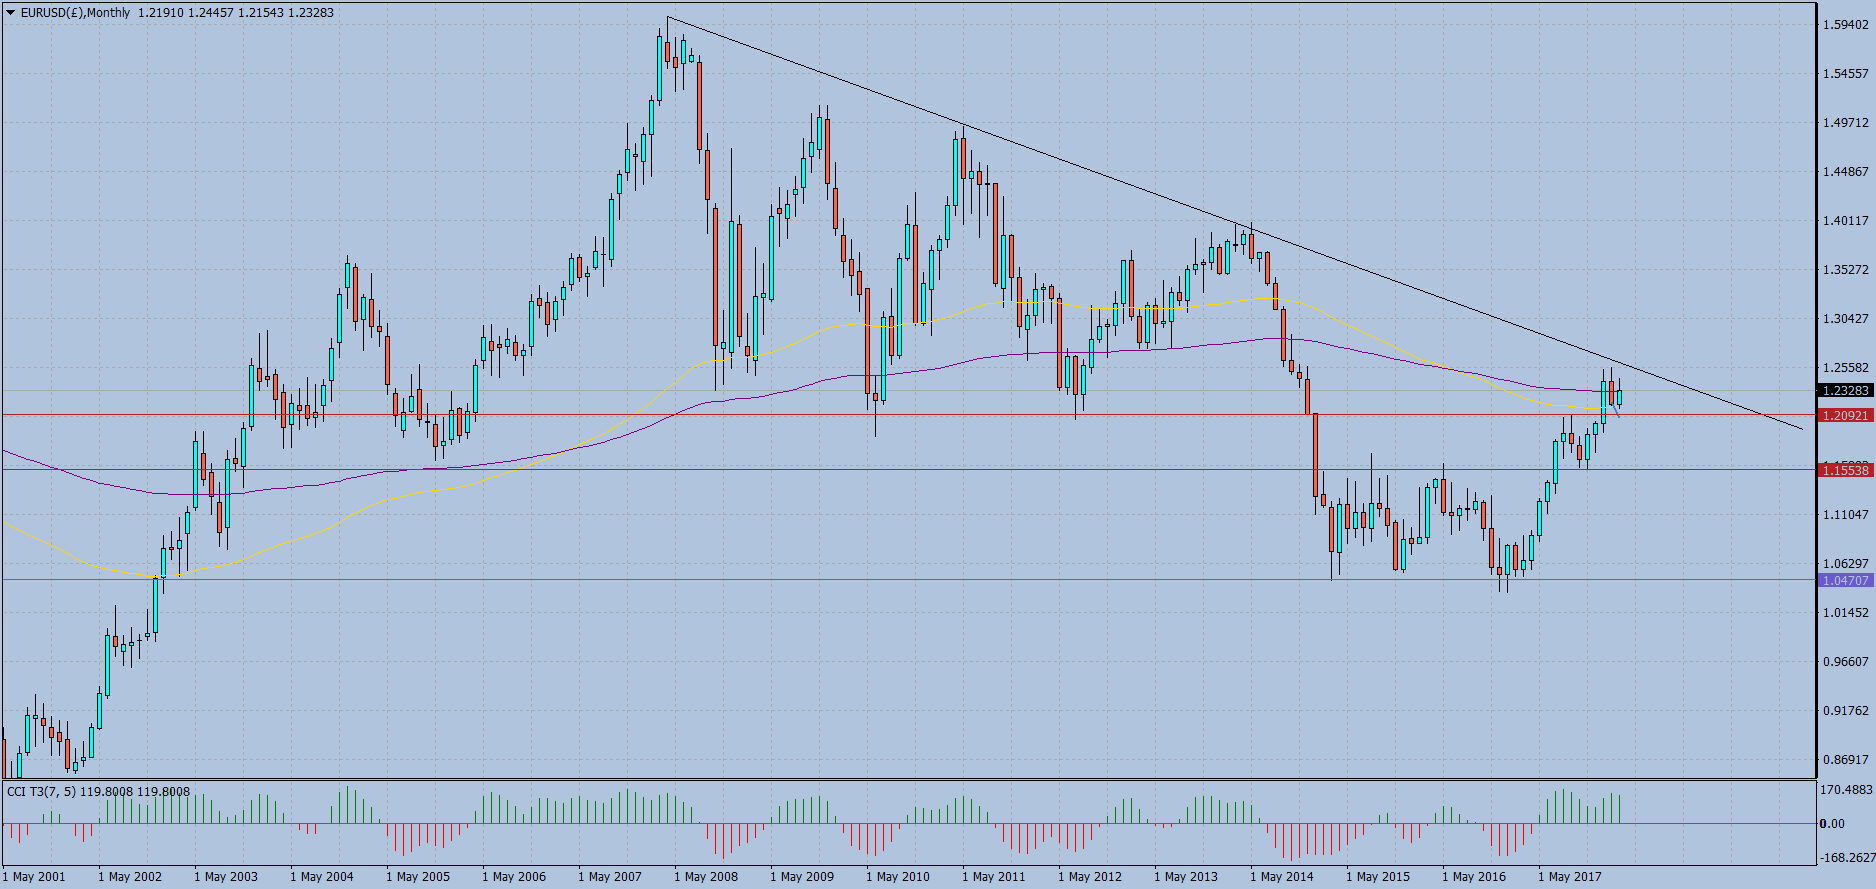 EURUSD(£)Monthly.png